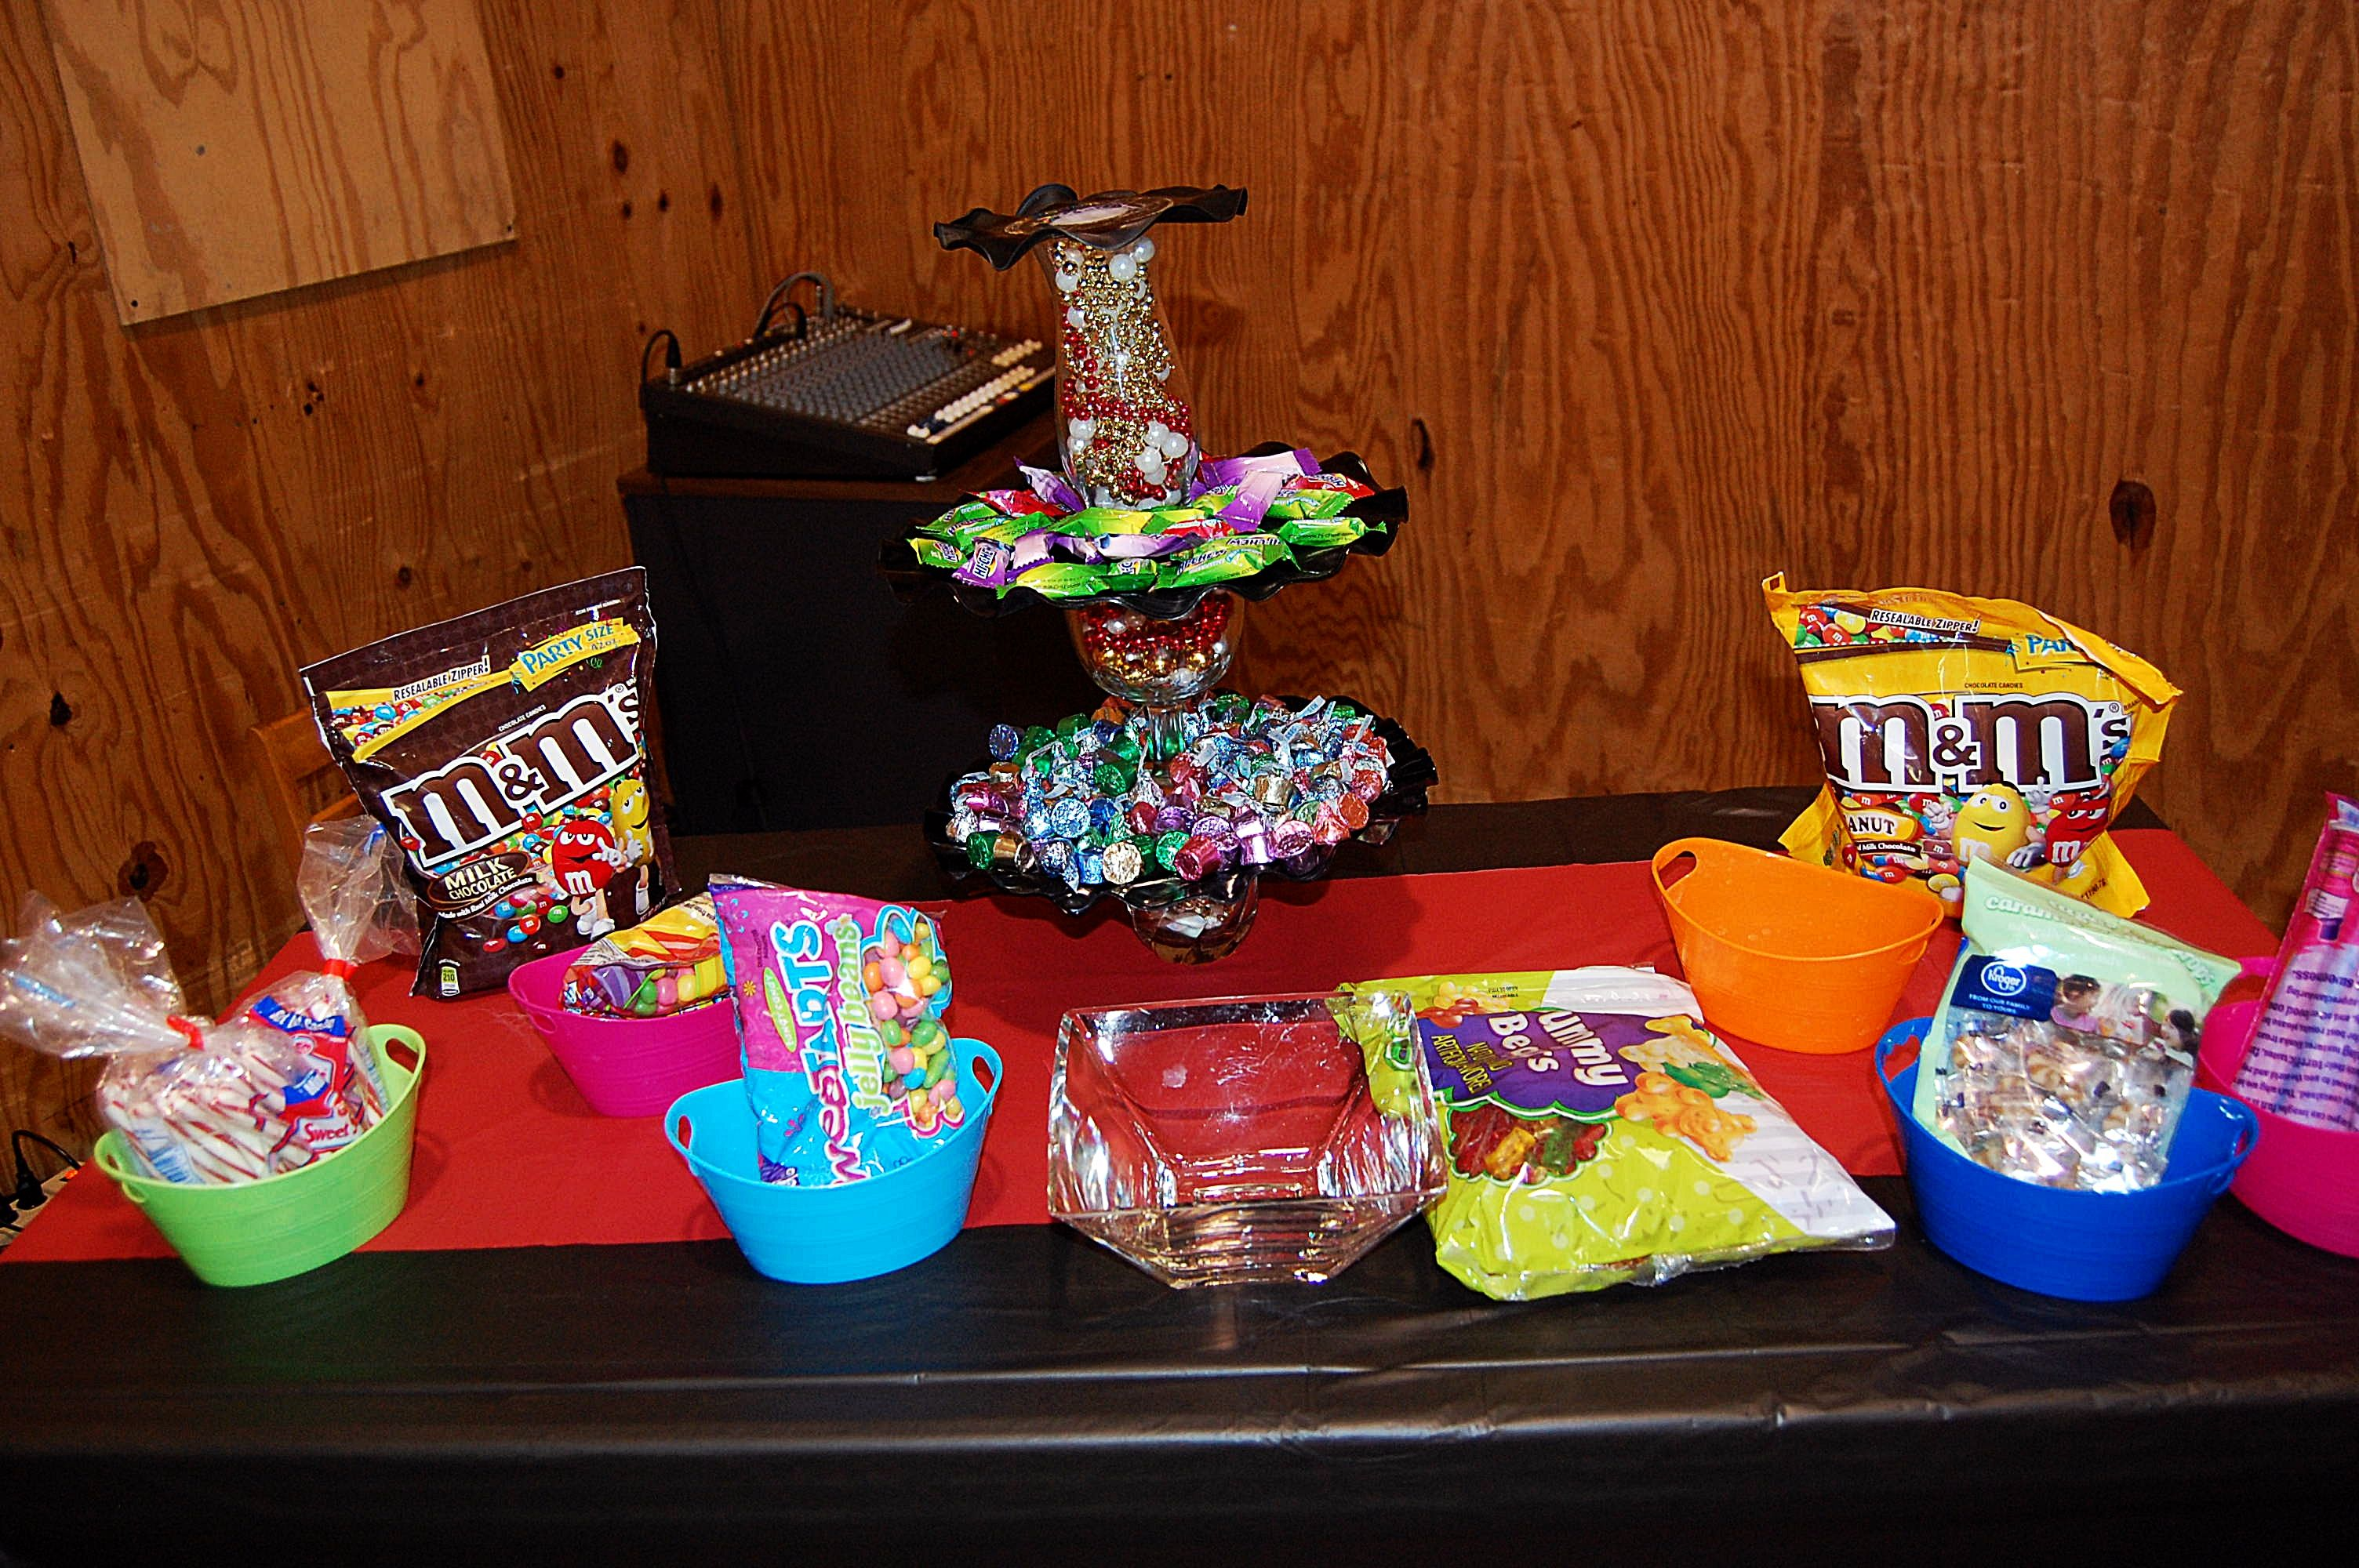 The candy table.